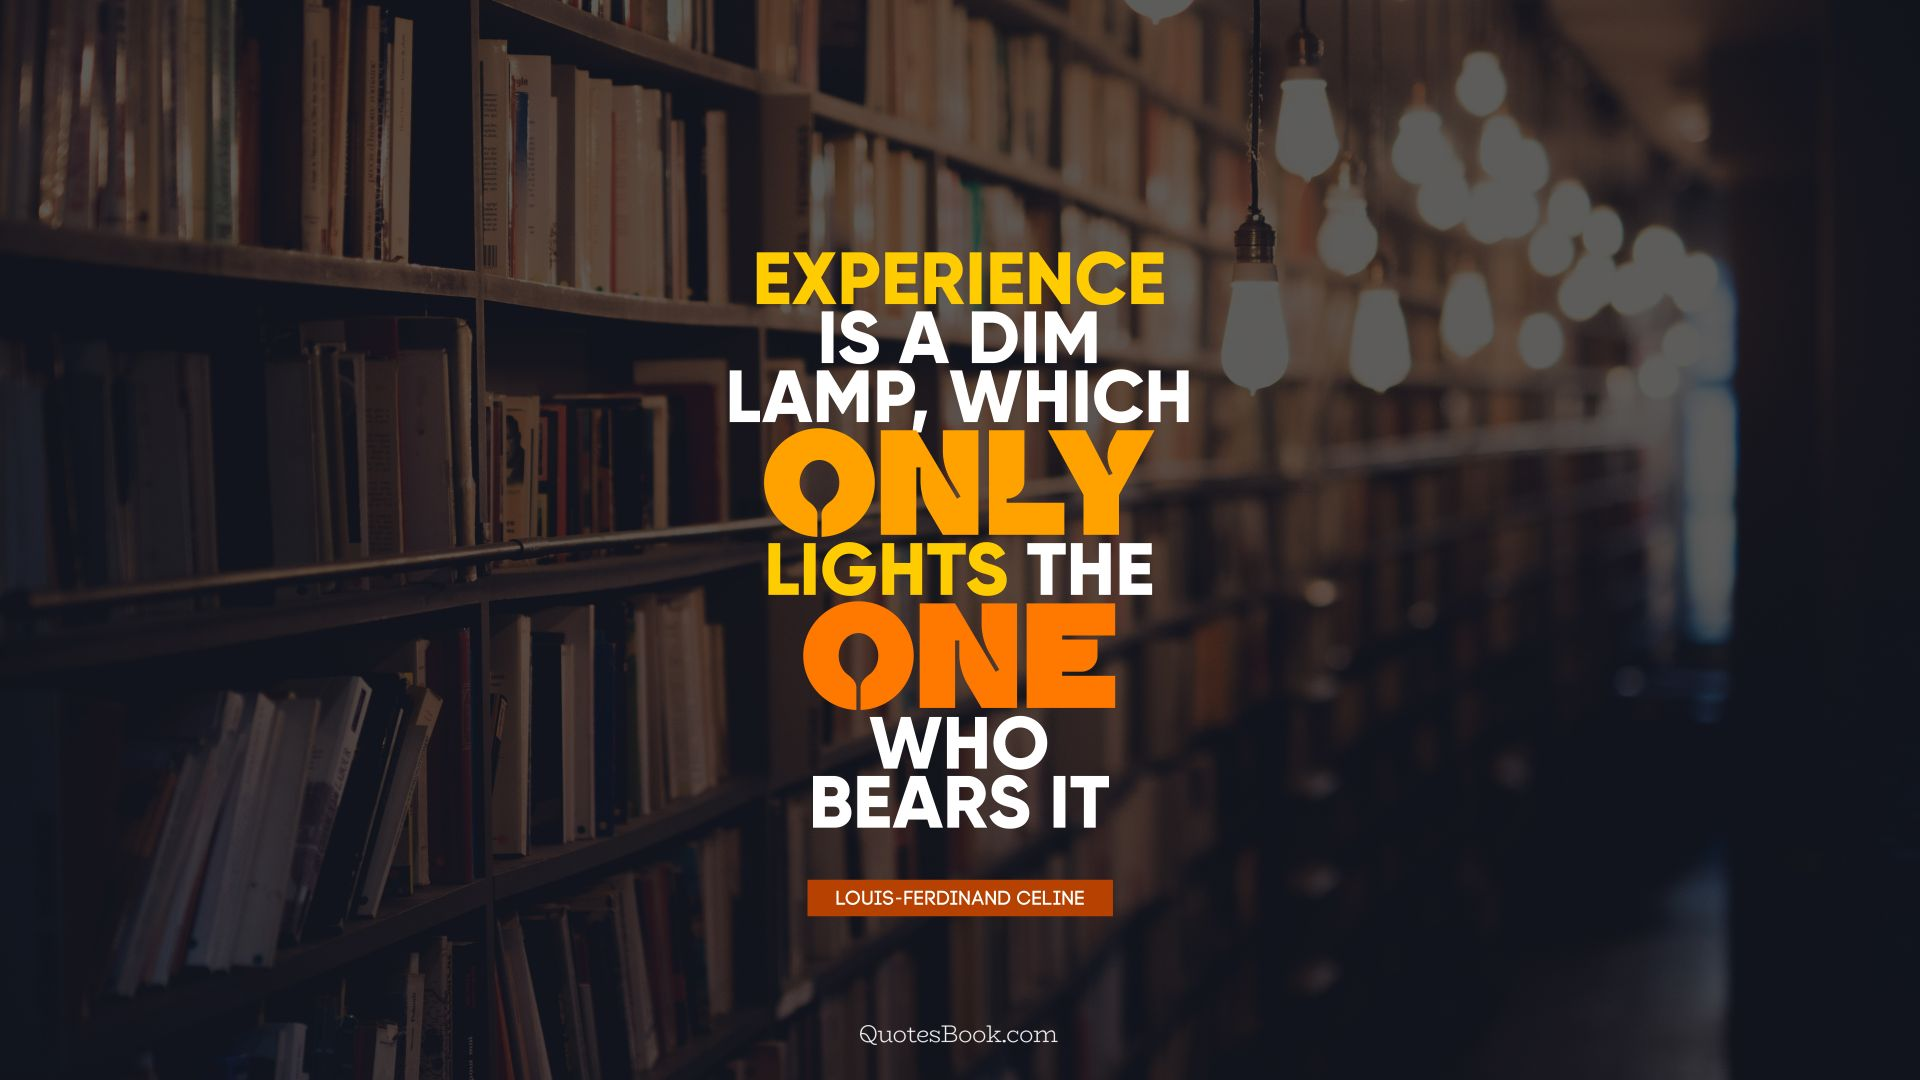 Experience is a dim lamp, which only lights the one who bears it. - Quote by Louis-Ferdinand Celine